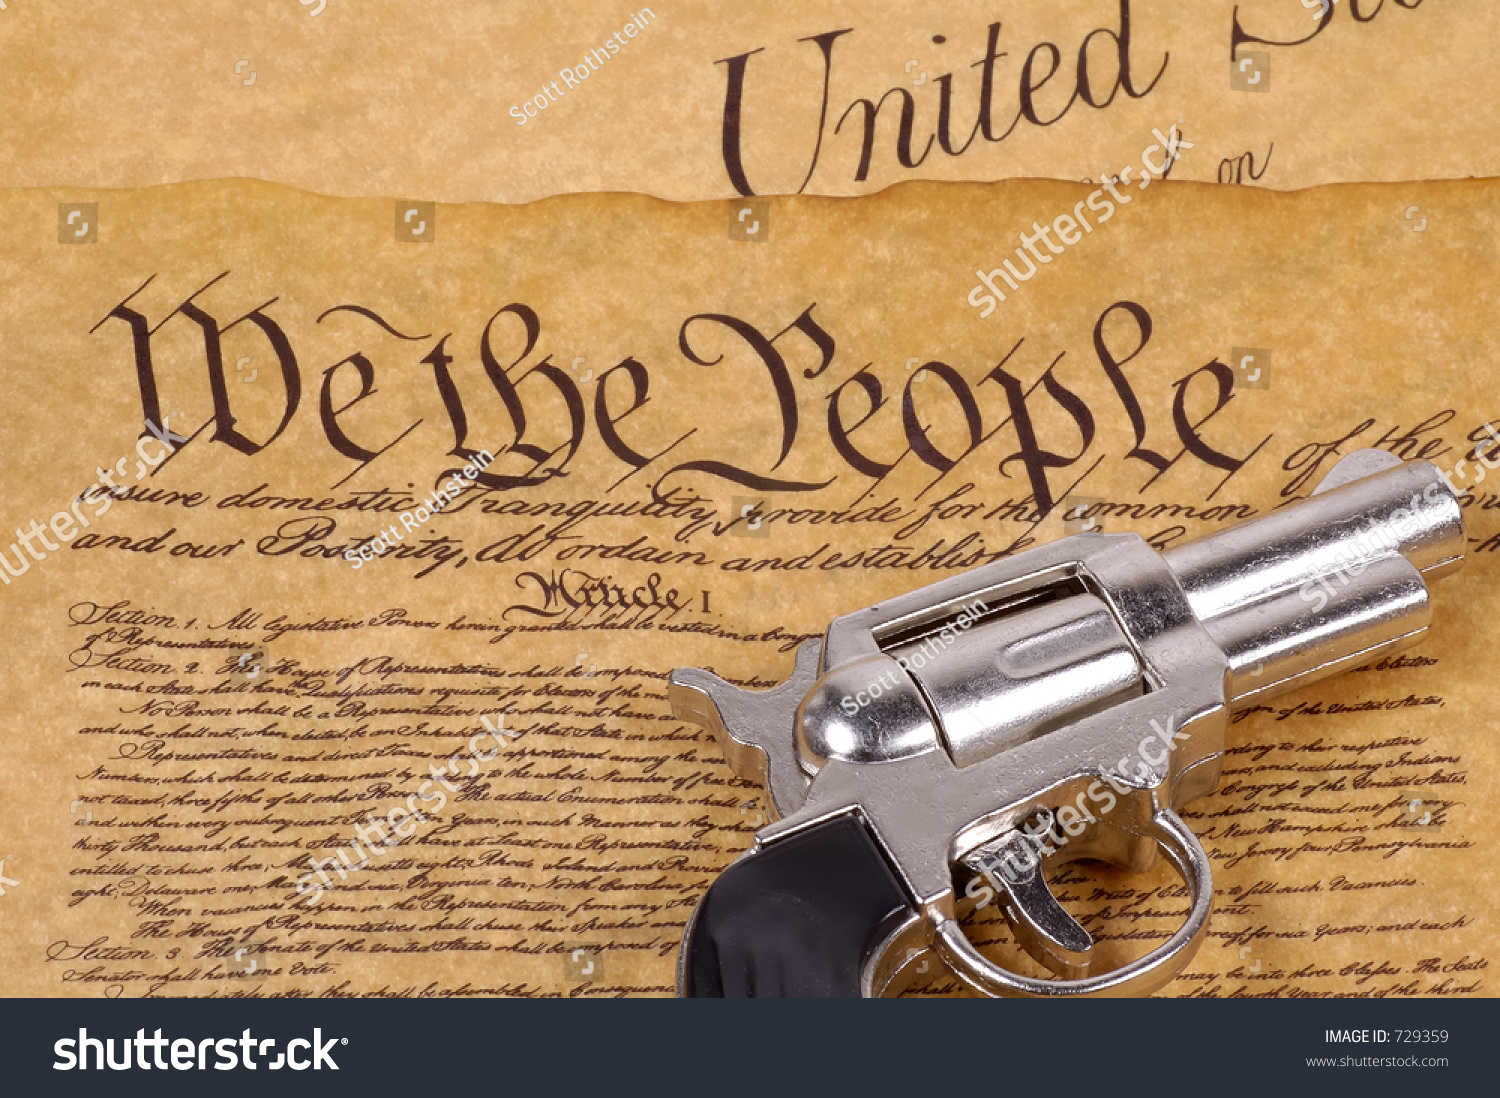 declaration independence gun right bare arms stock photo  declaration of independence and a gun right to bare arms concept